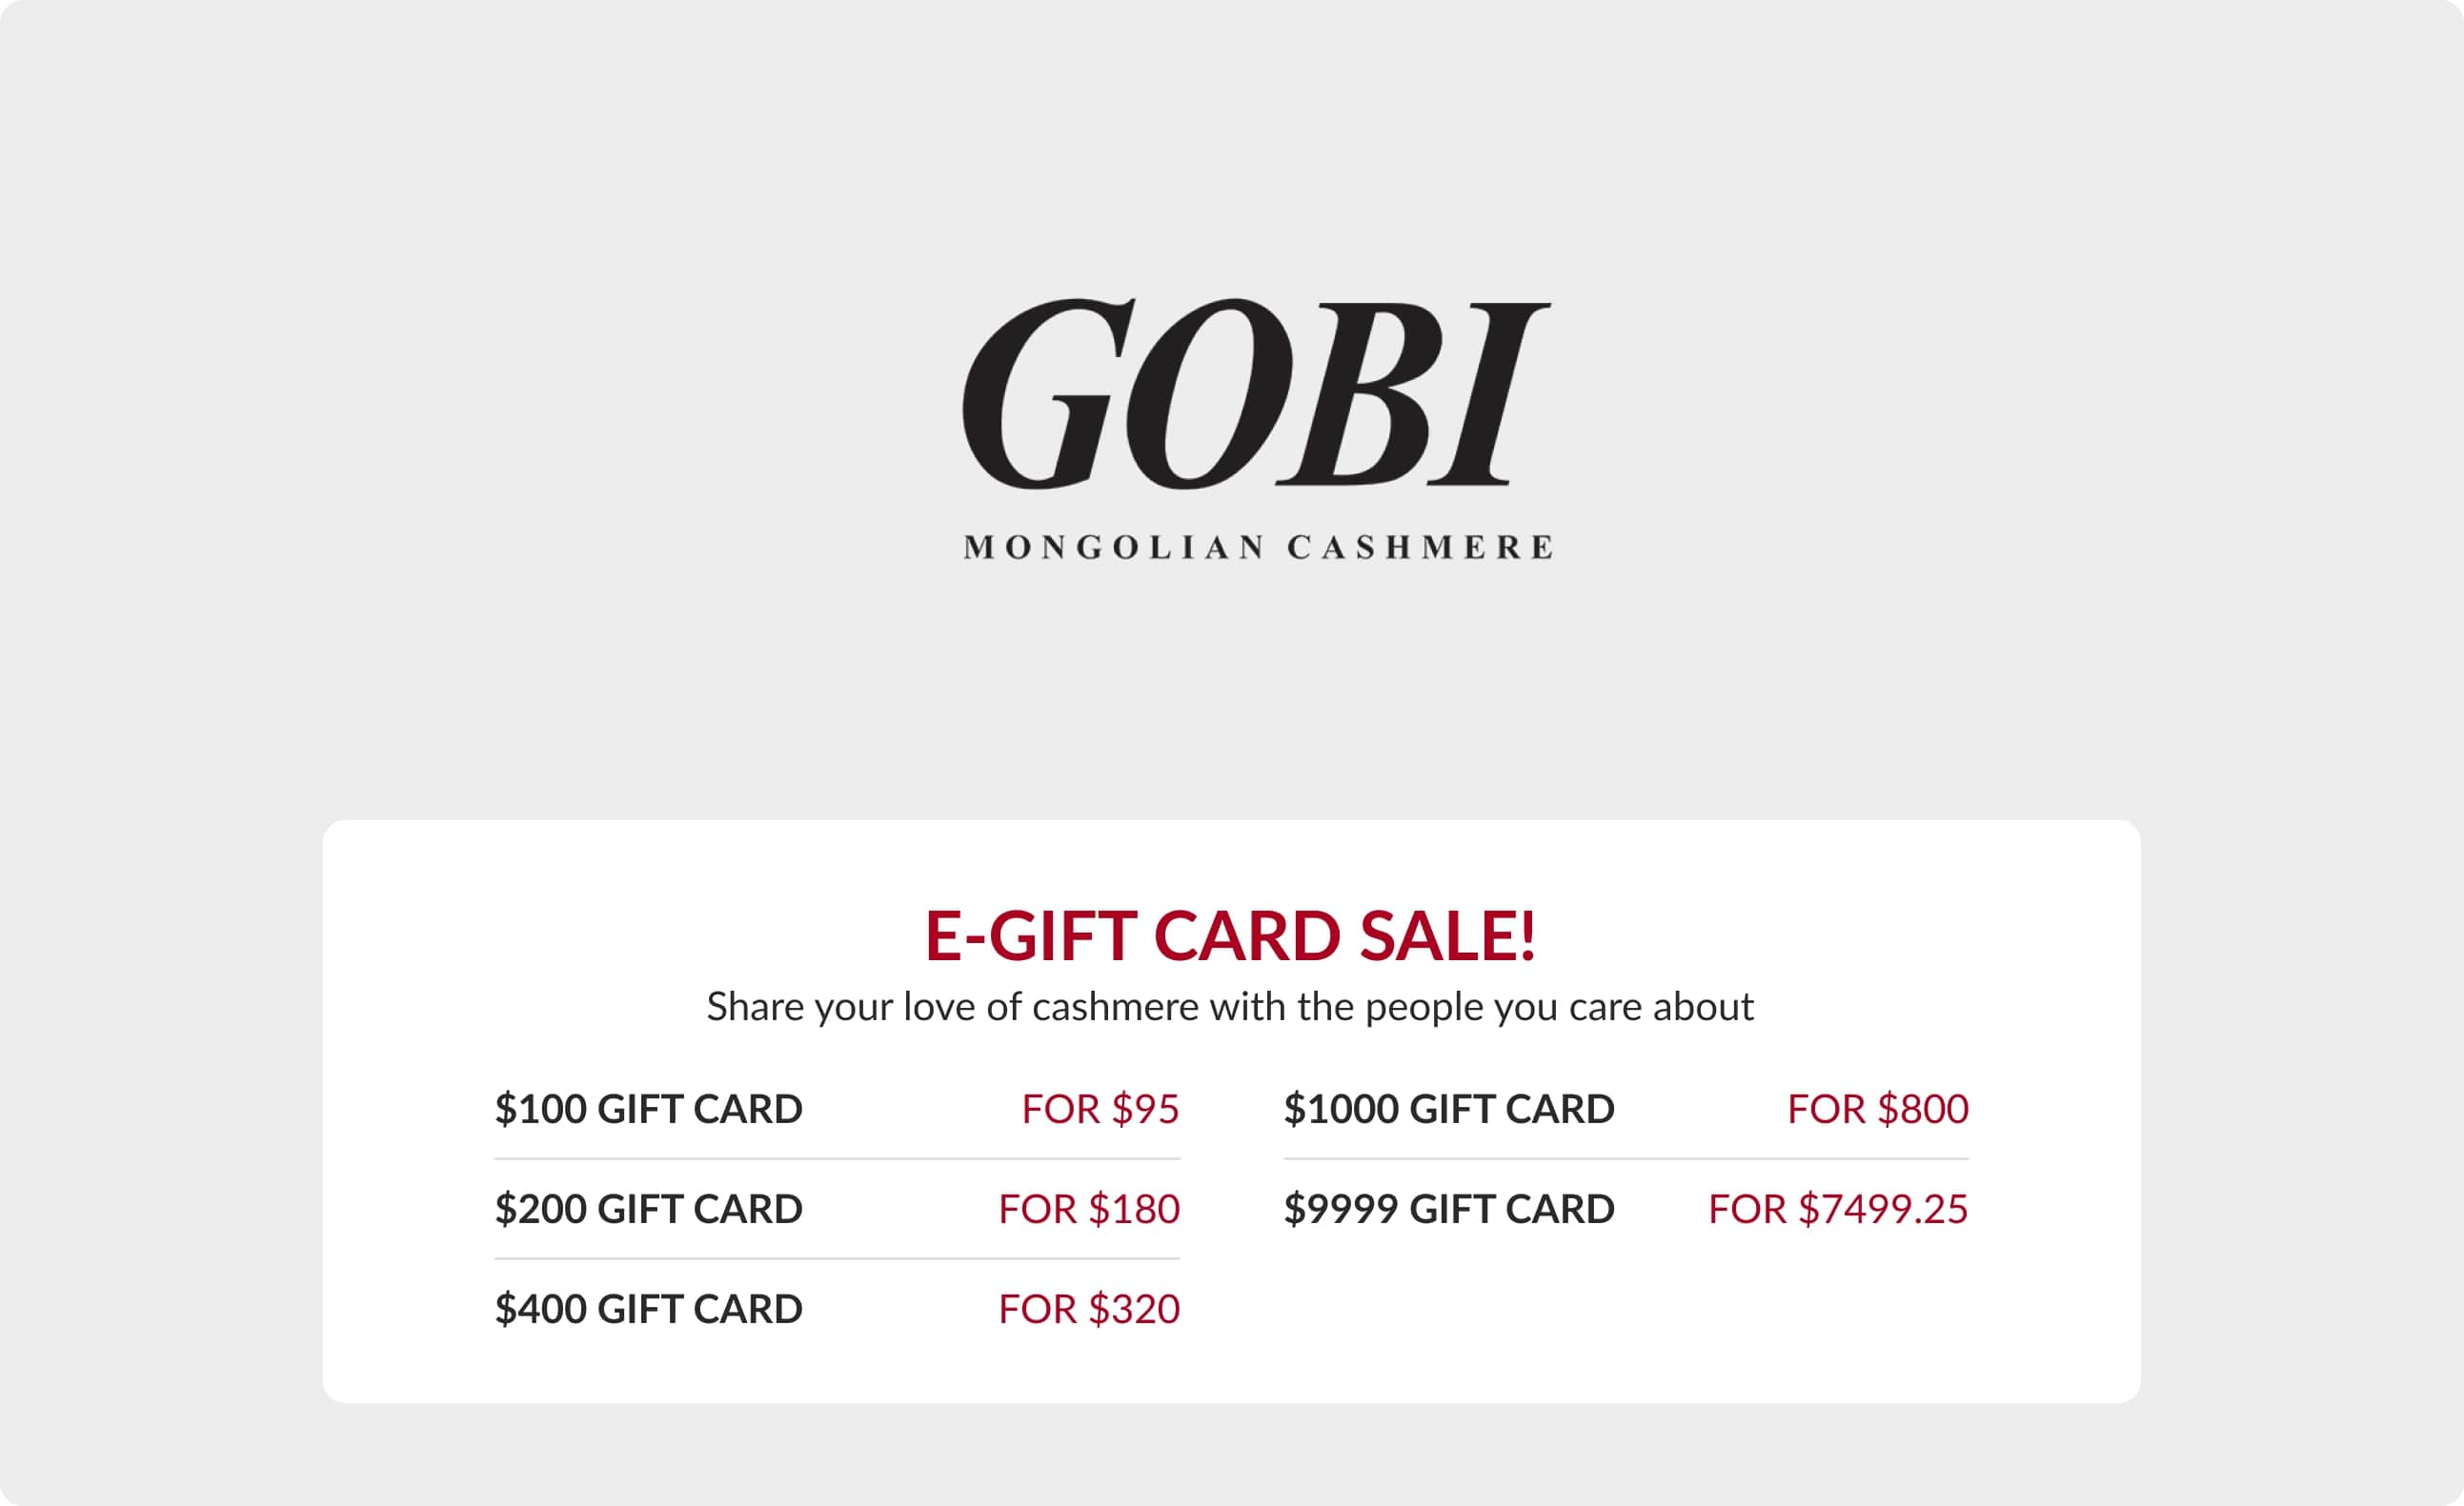 GiftCard product US 00 - Get $200 gift card for $180